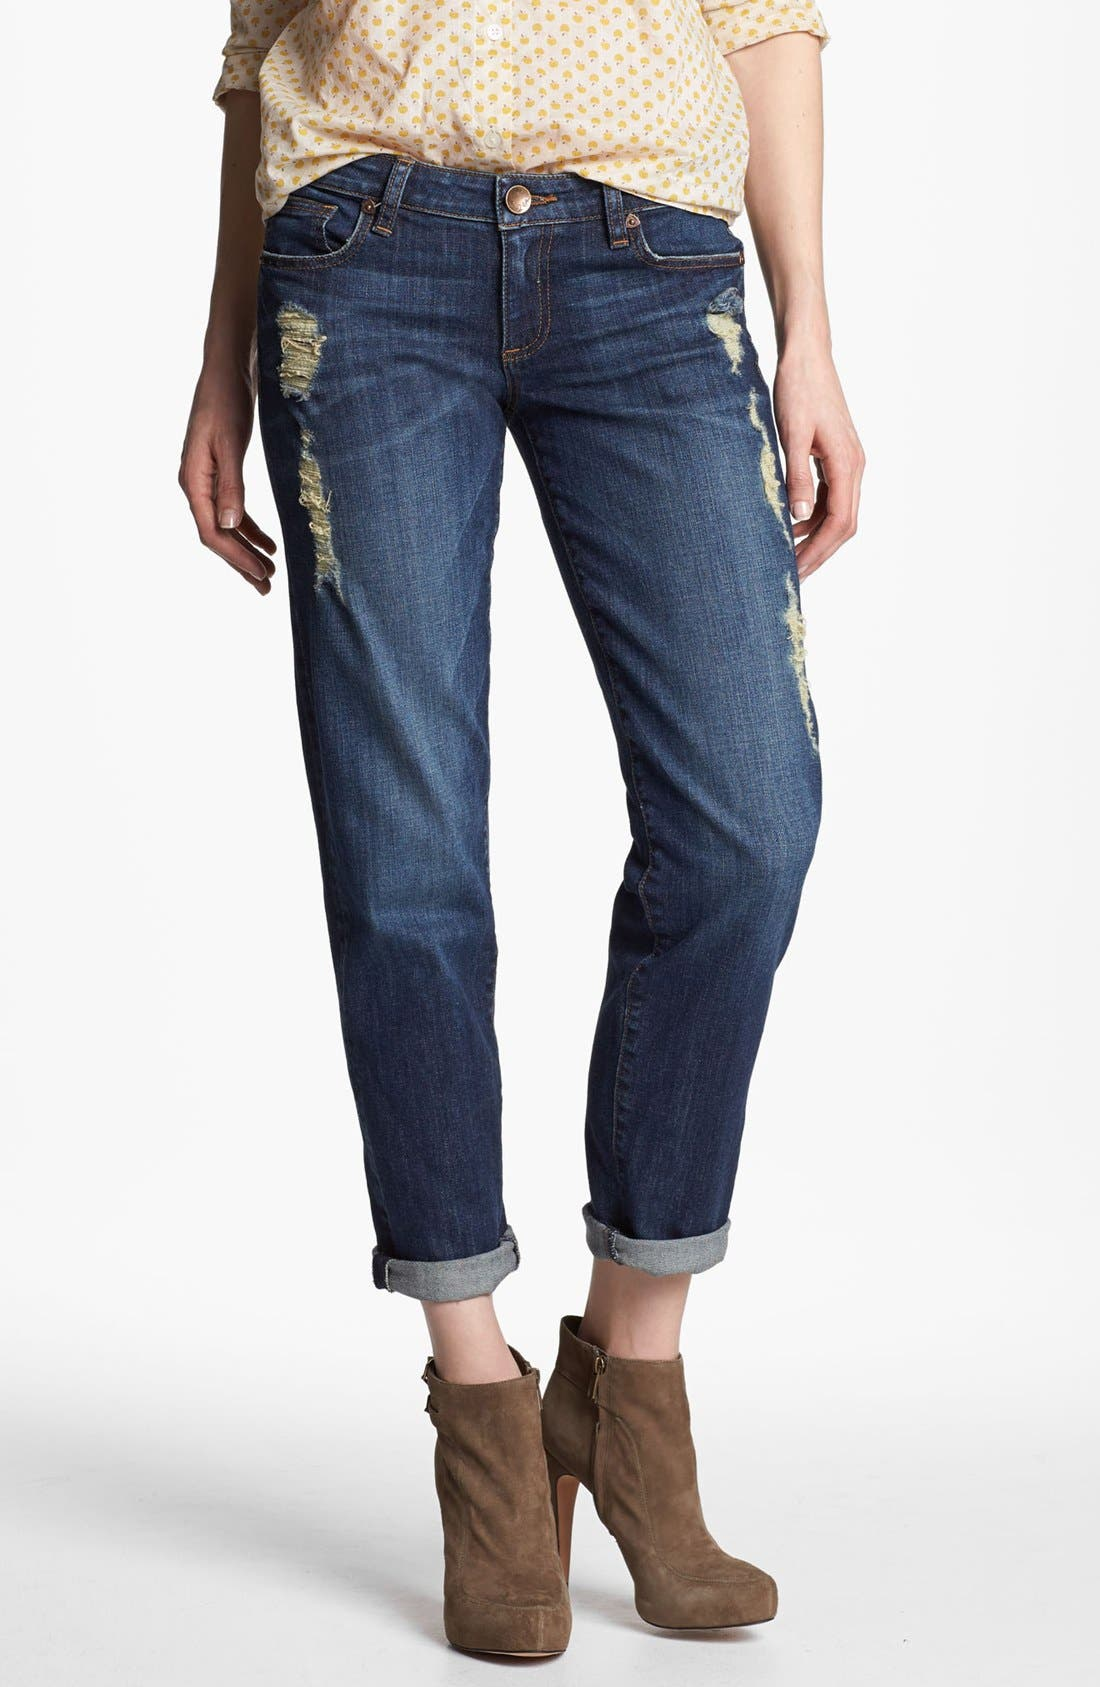 Main Image - KUT from the Kloth 'Catherine' Slim Boyfriend Jeans (Casual Dark Stone)